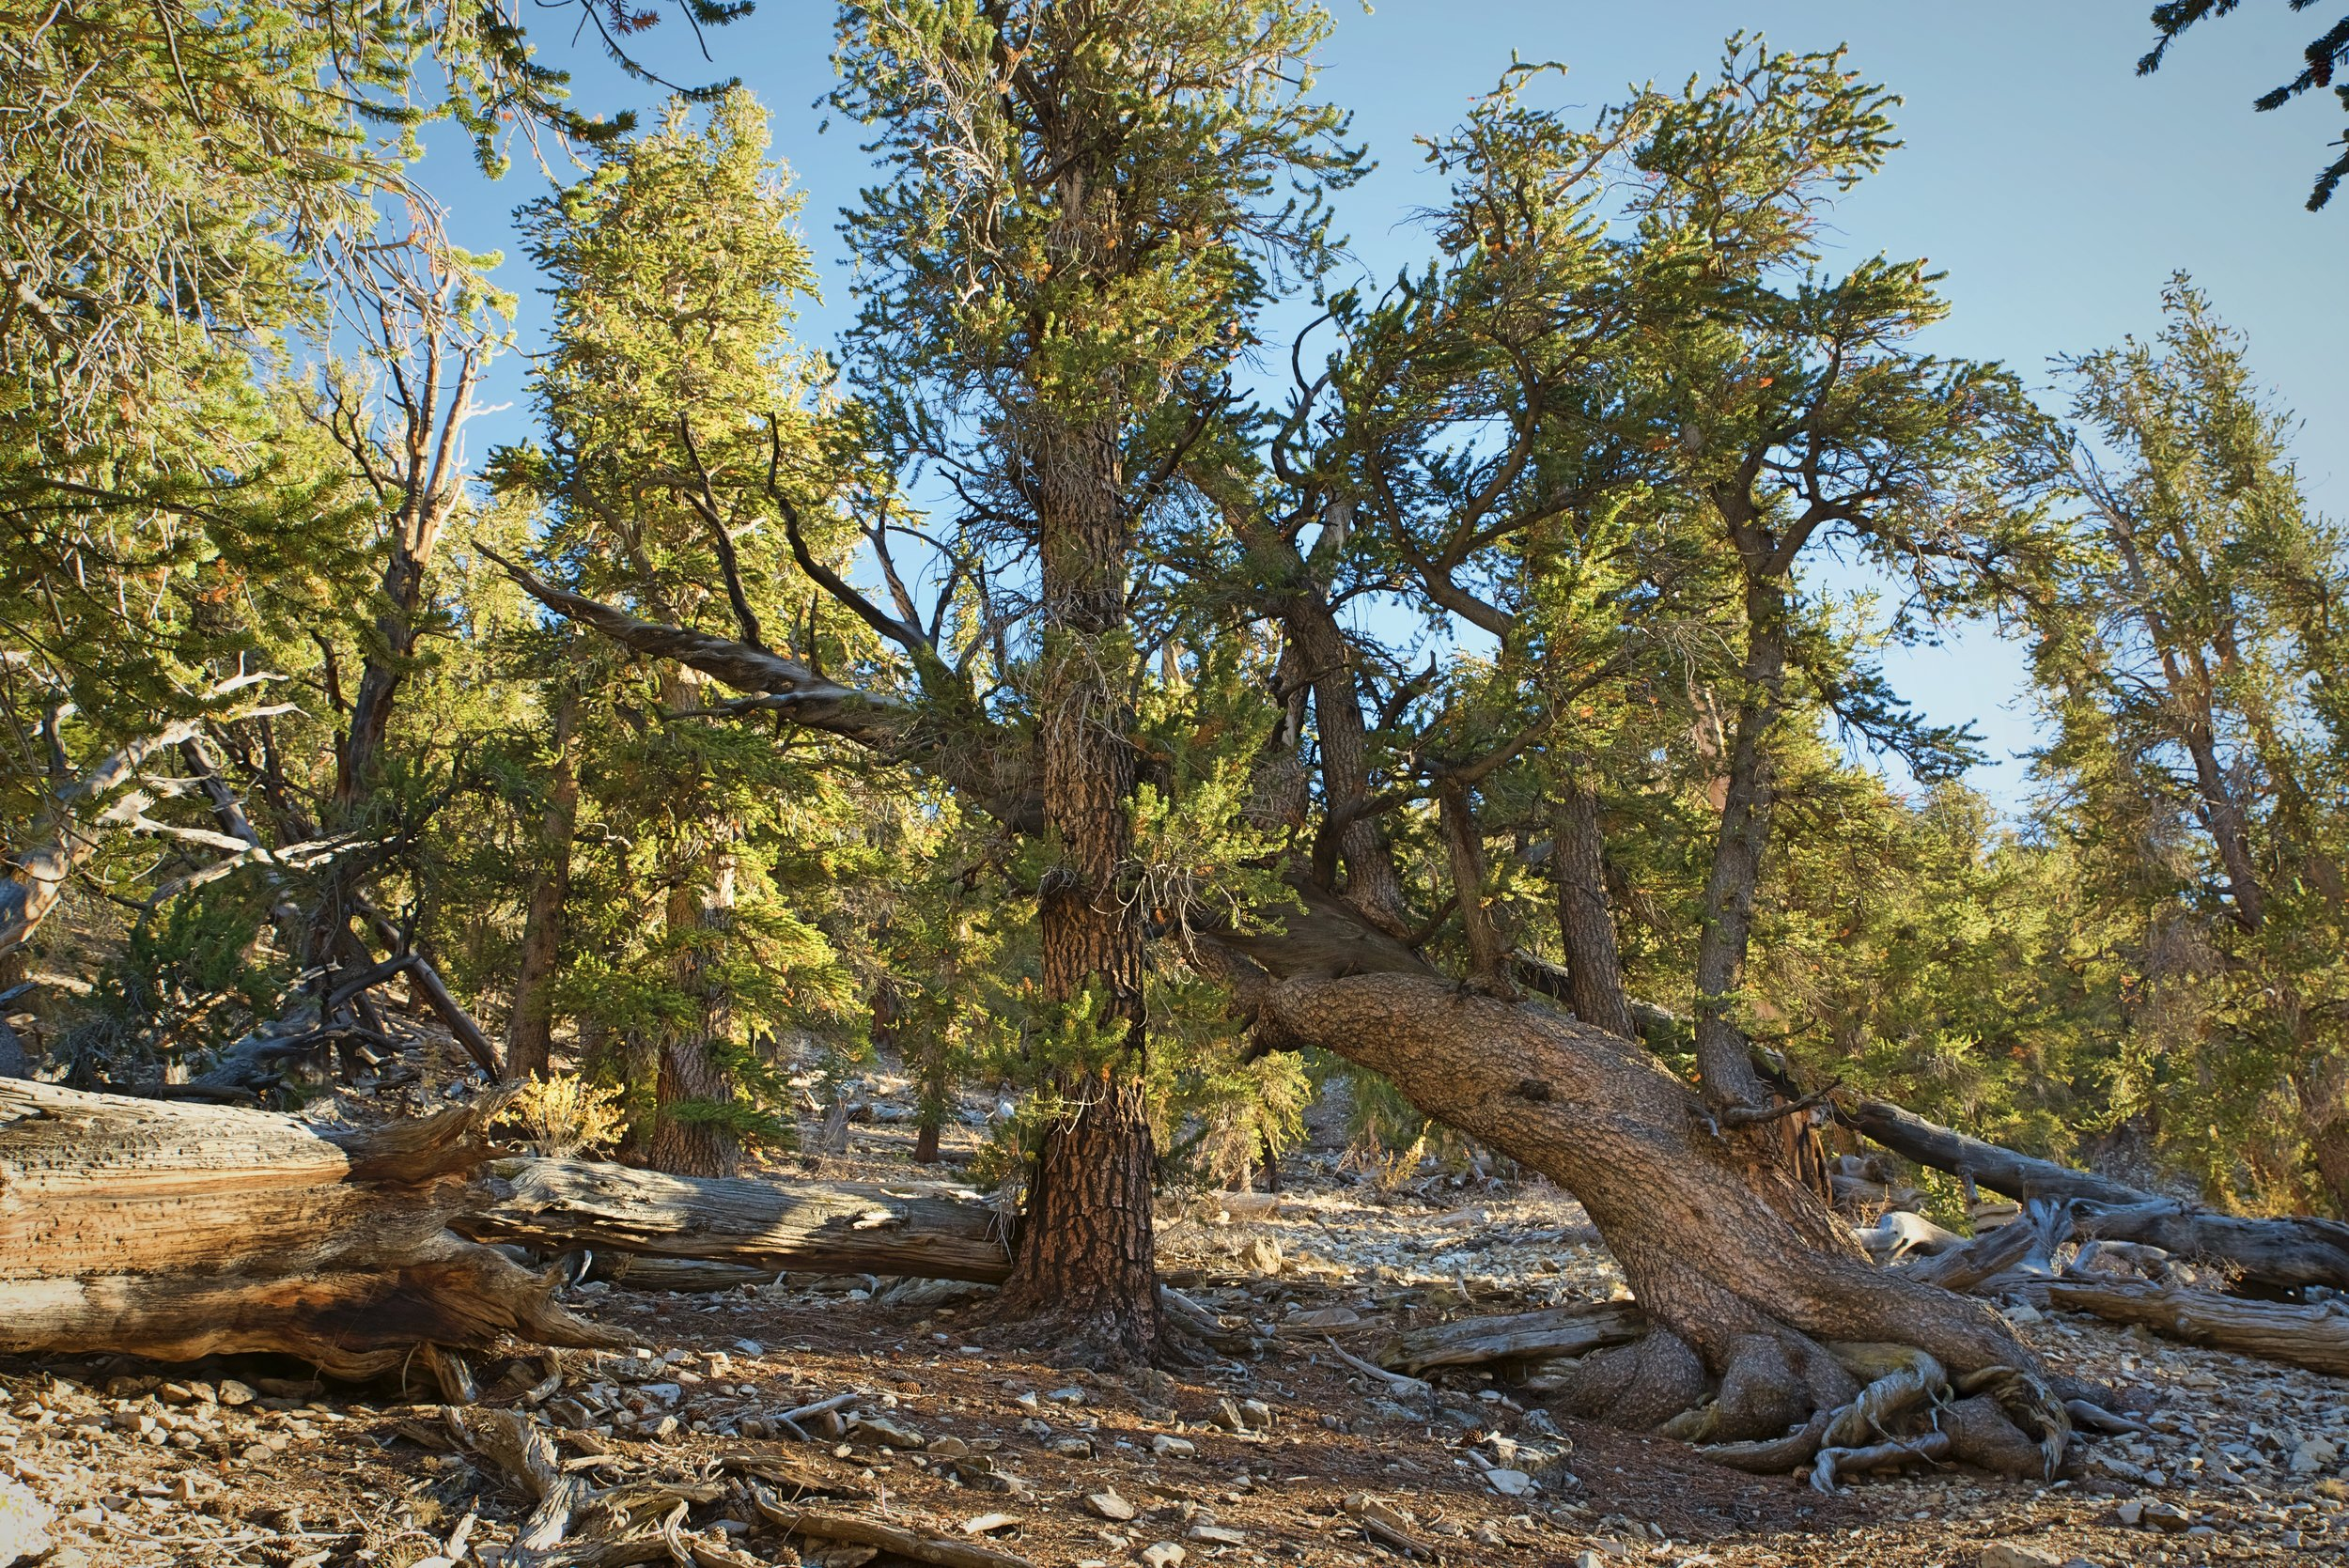 Bristlecone pines can grow in the harsh alpine conditions of the White Mountains.